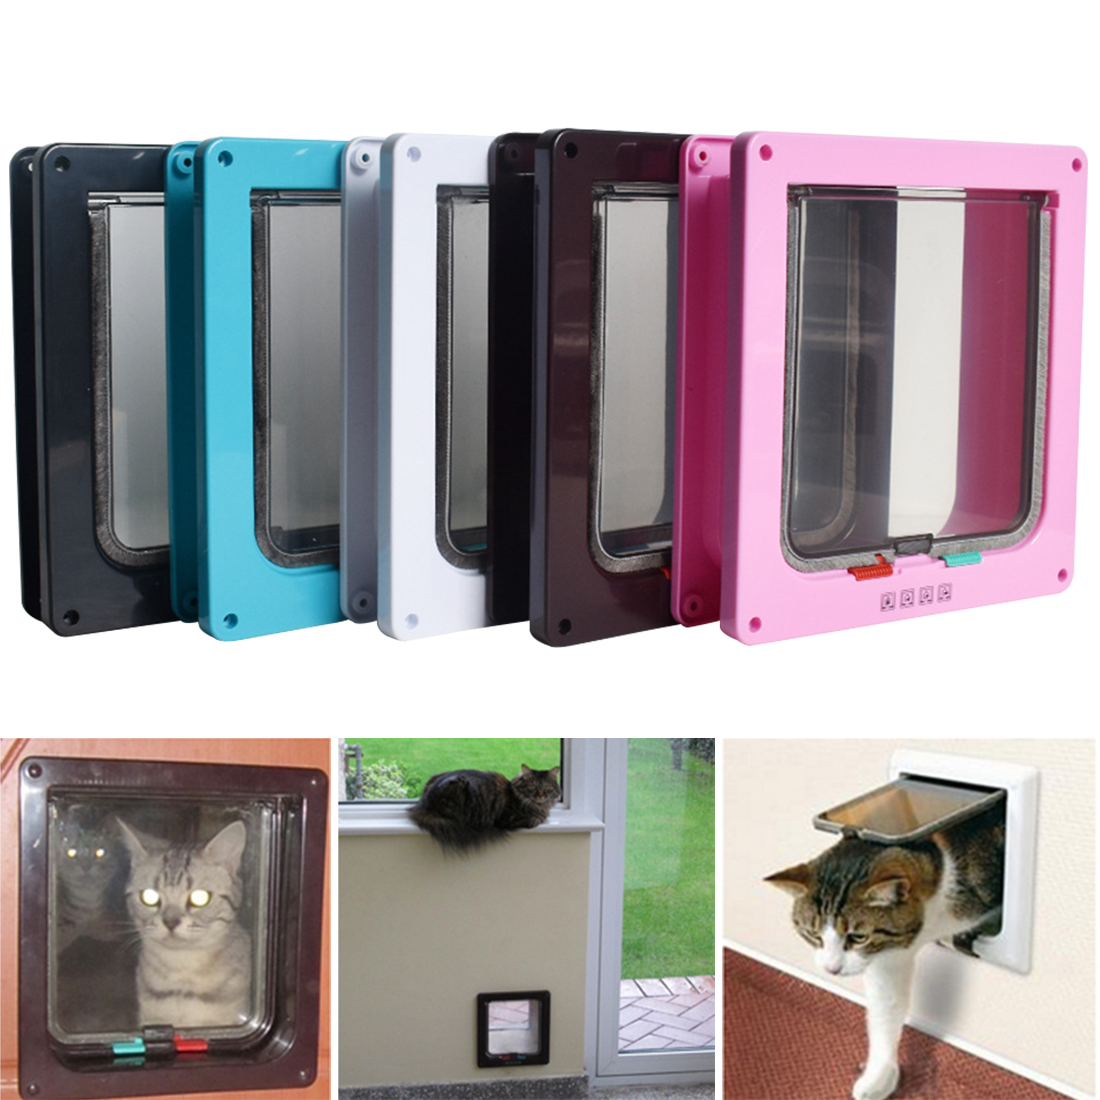 4 Way Lockable Dog Cat Kitten Door Security Flap Door Abs Plastic S/m/l Animal Small Pet Cat Dog Gate Door Pet Supplies 5 Colors